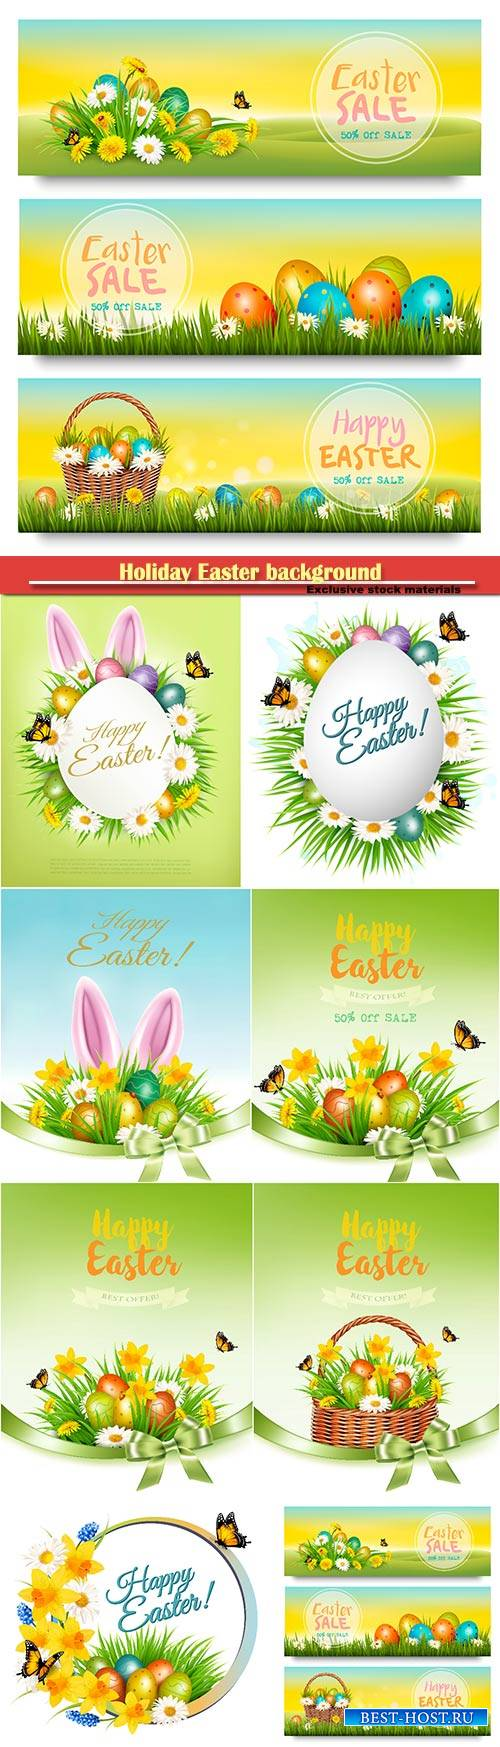 Holiday easter background with a colorful eggs and spring flowers